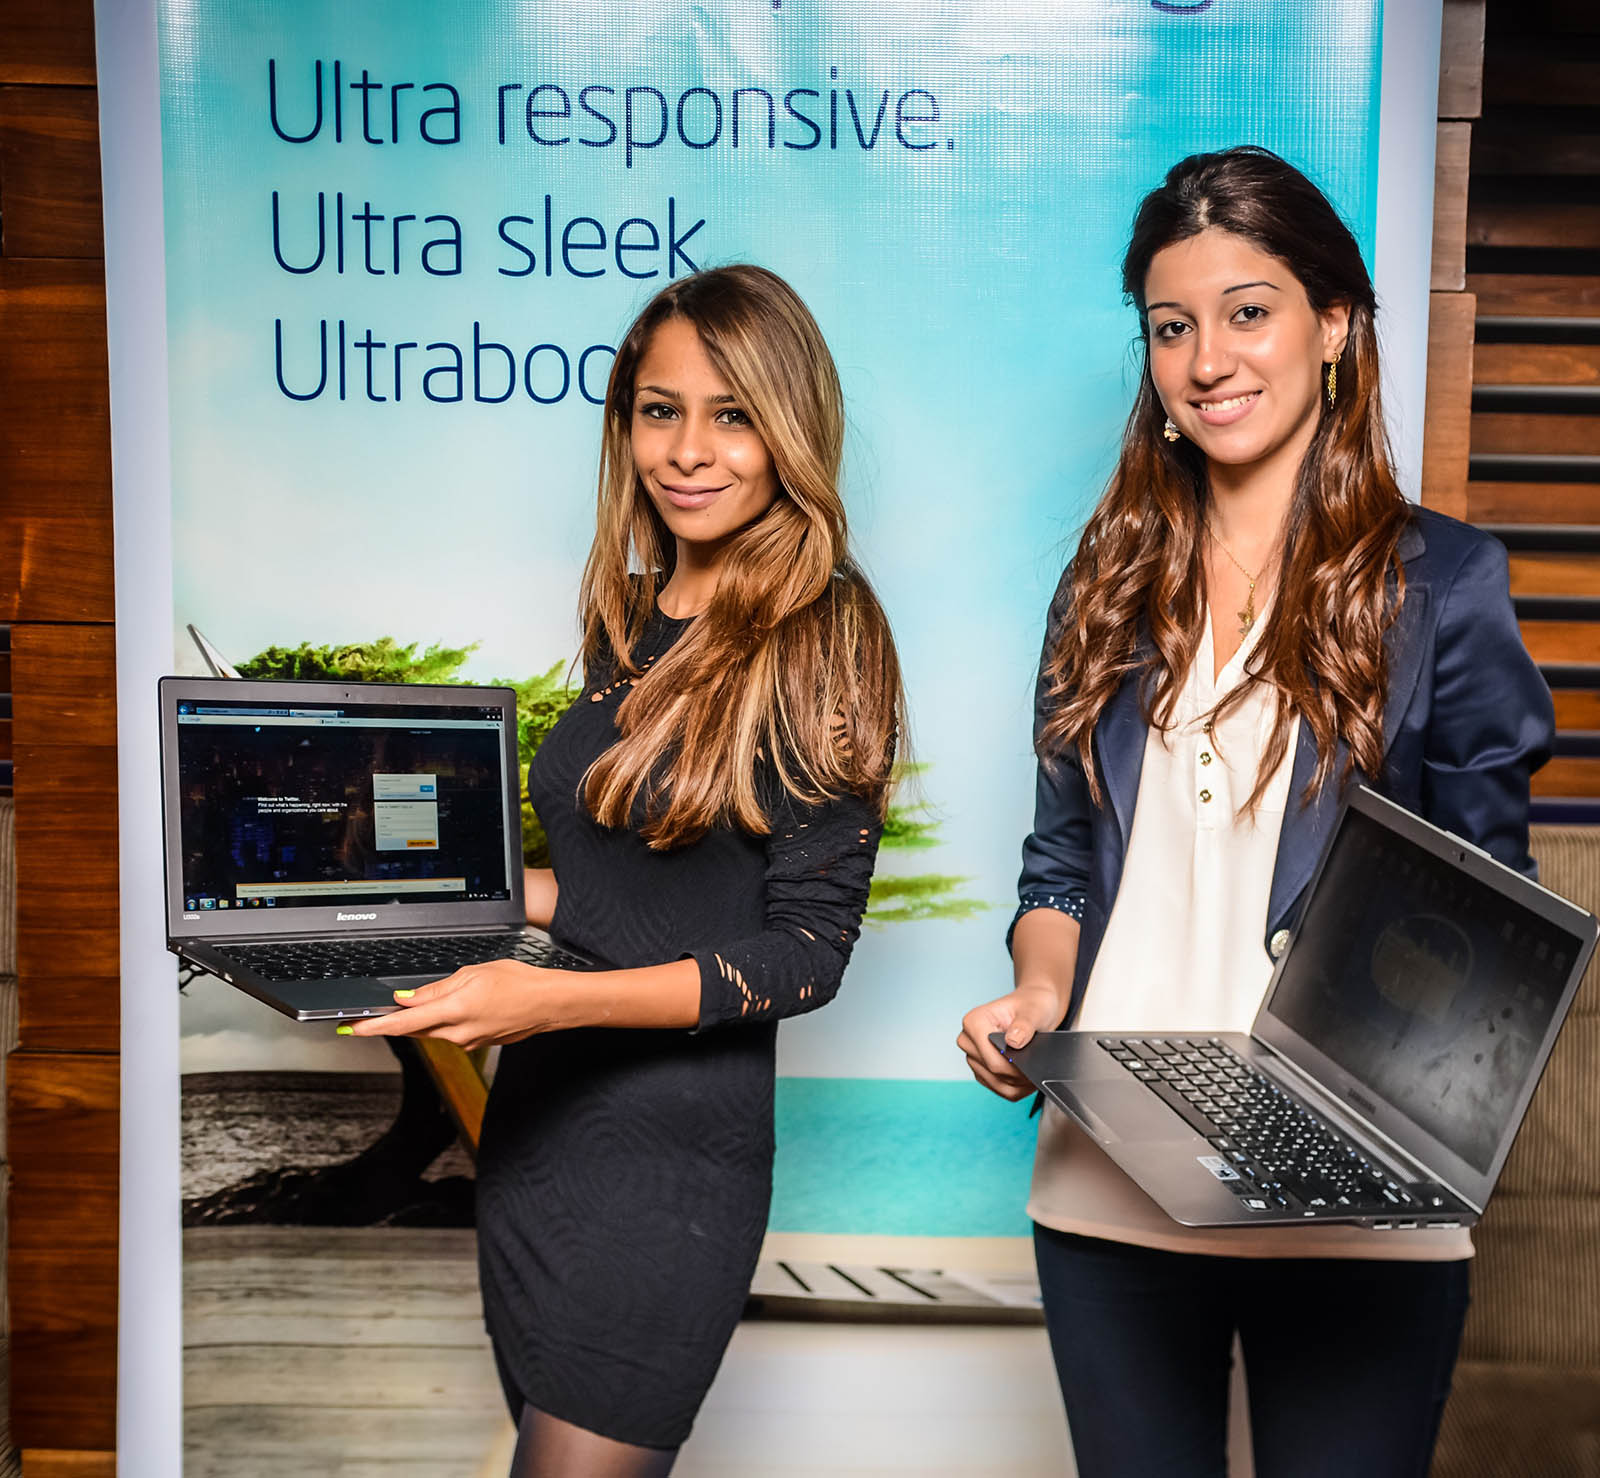 The Ultrabook: Beauty & Brains